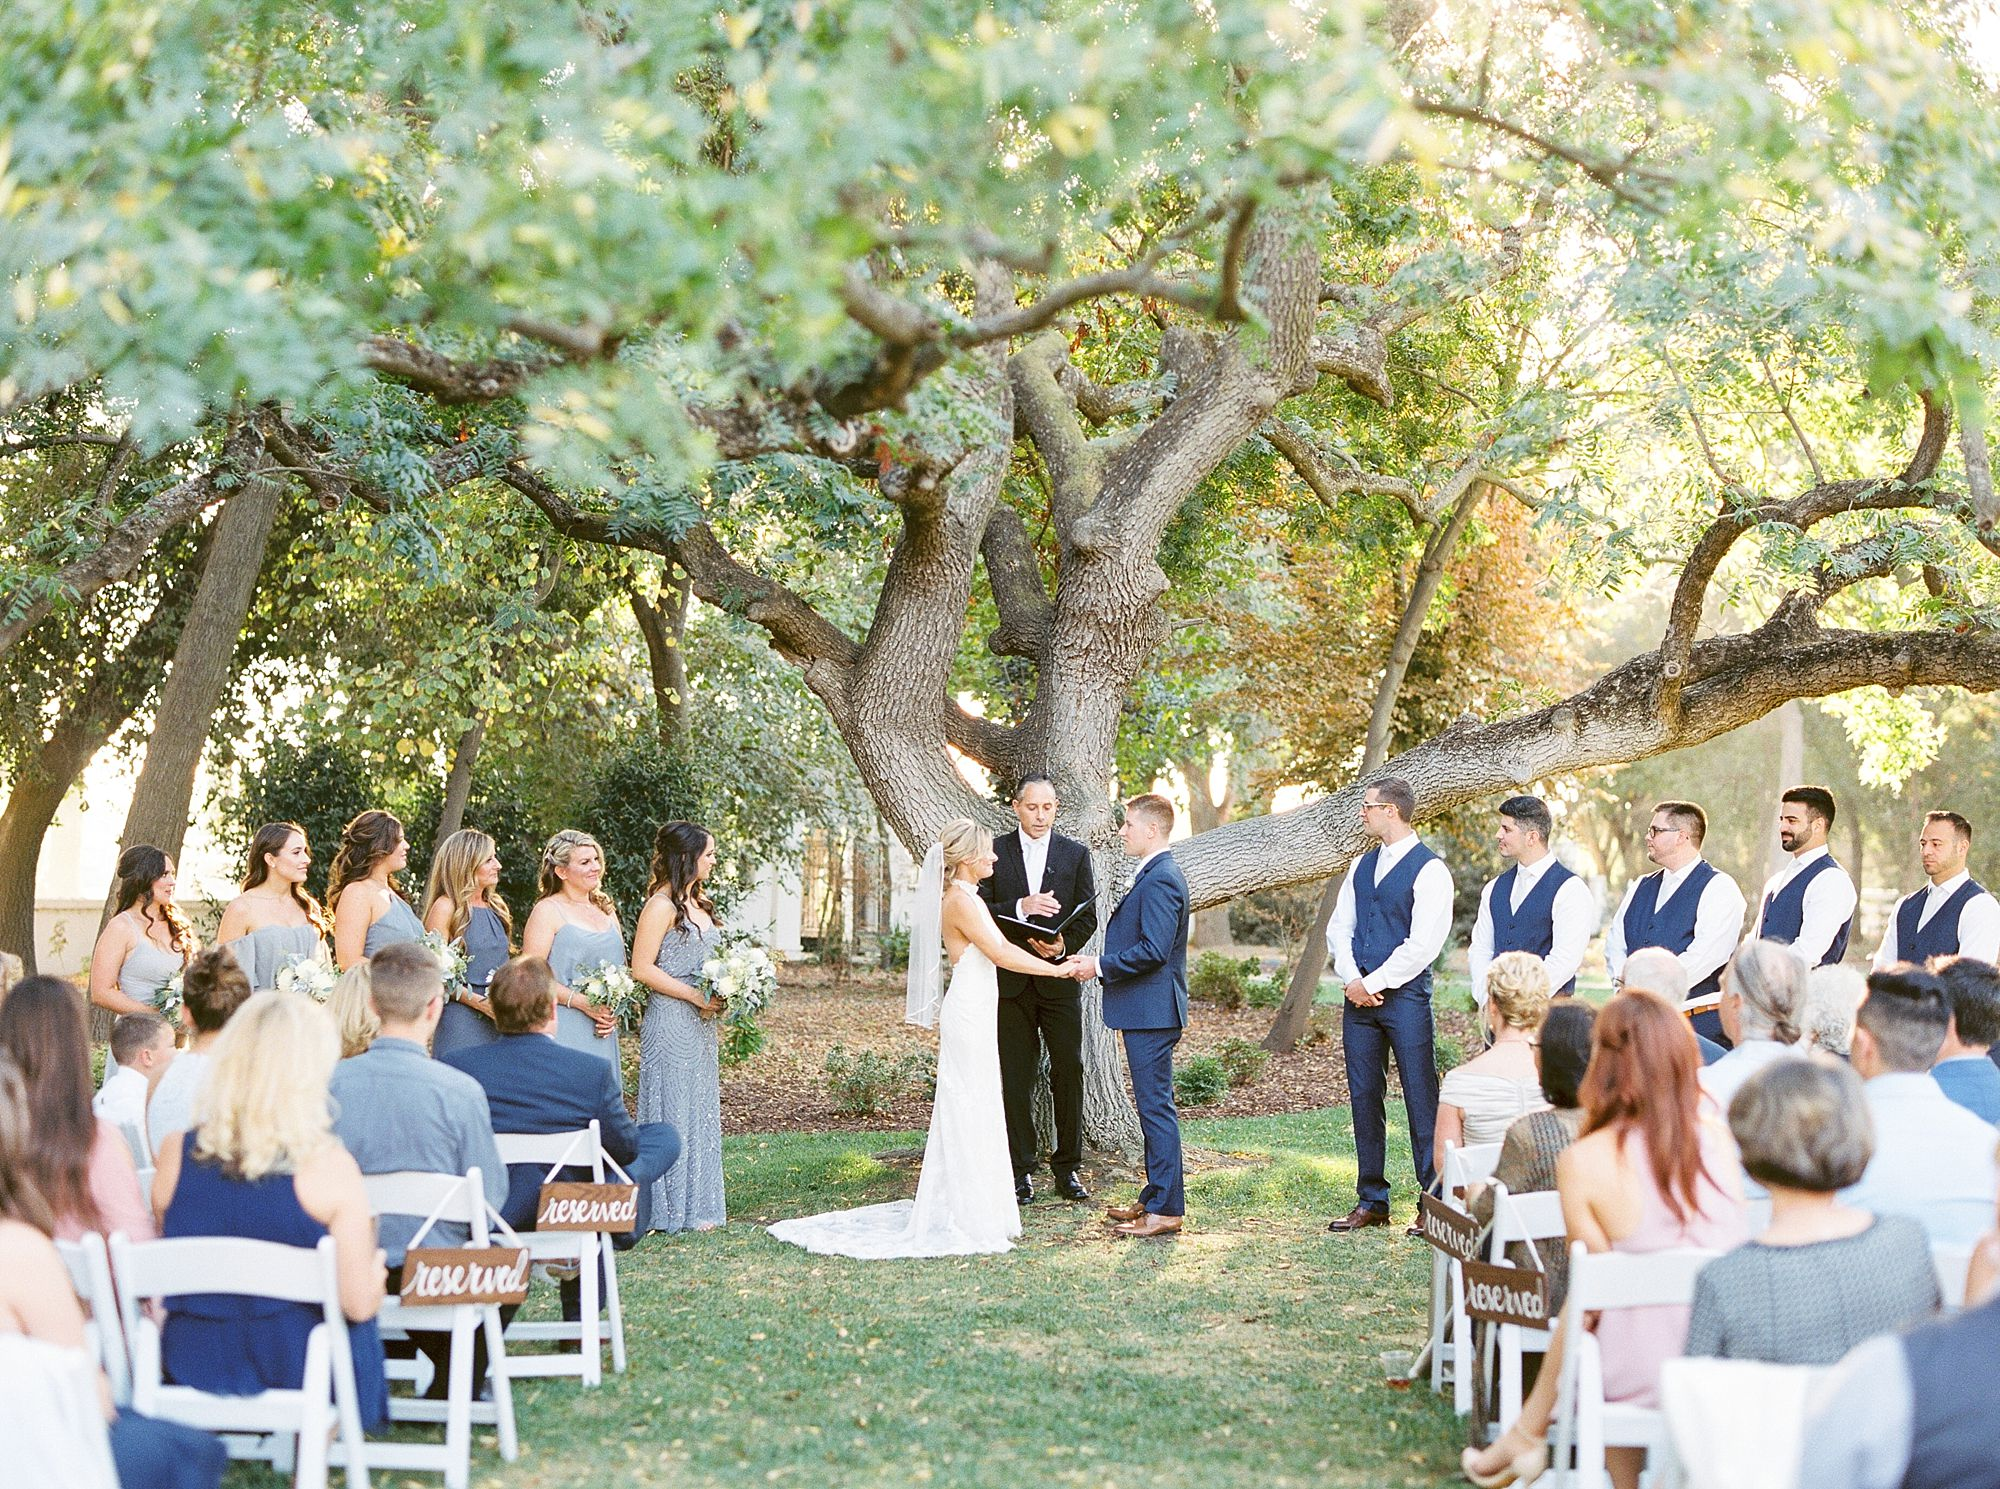 The Maples Wedding in Woodland California - Ashley Baumgartner - Sacramento Wedding Photographer - Sacramento Film Photographer_0039.jpg